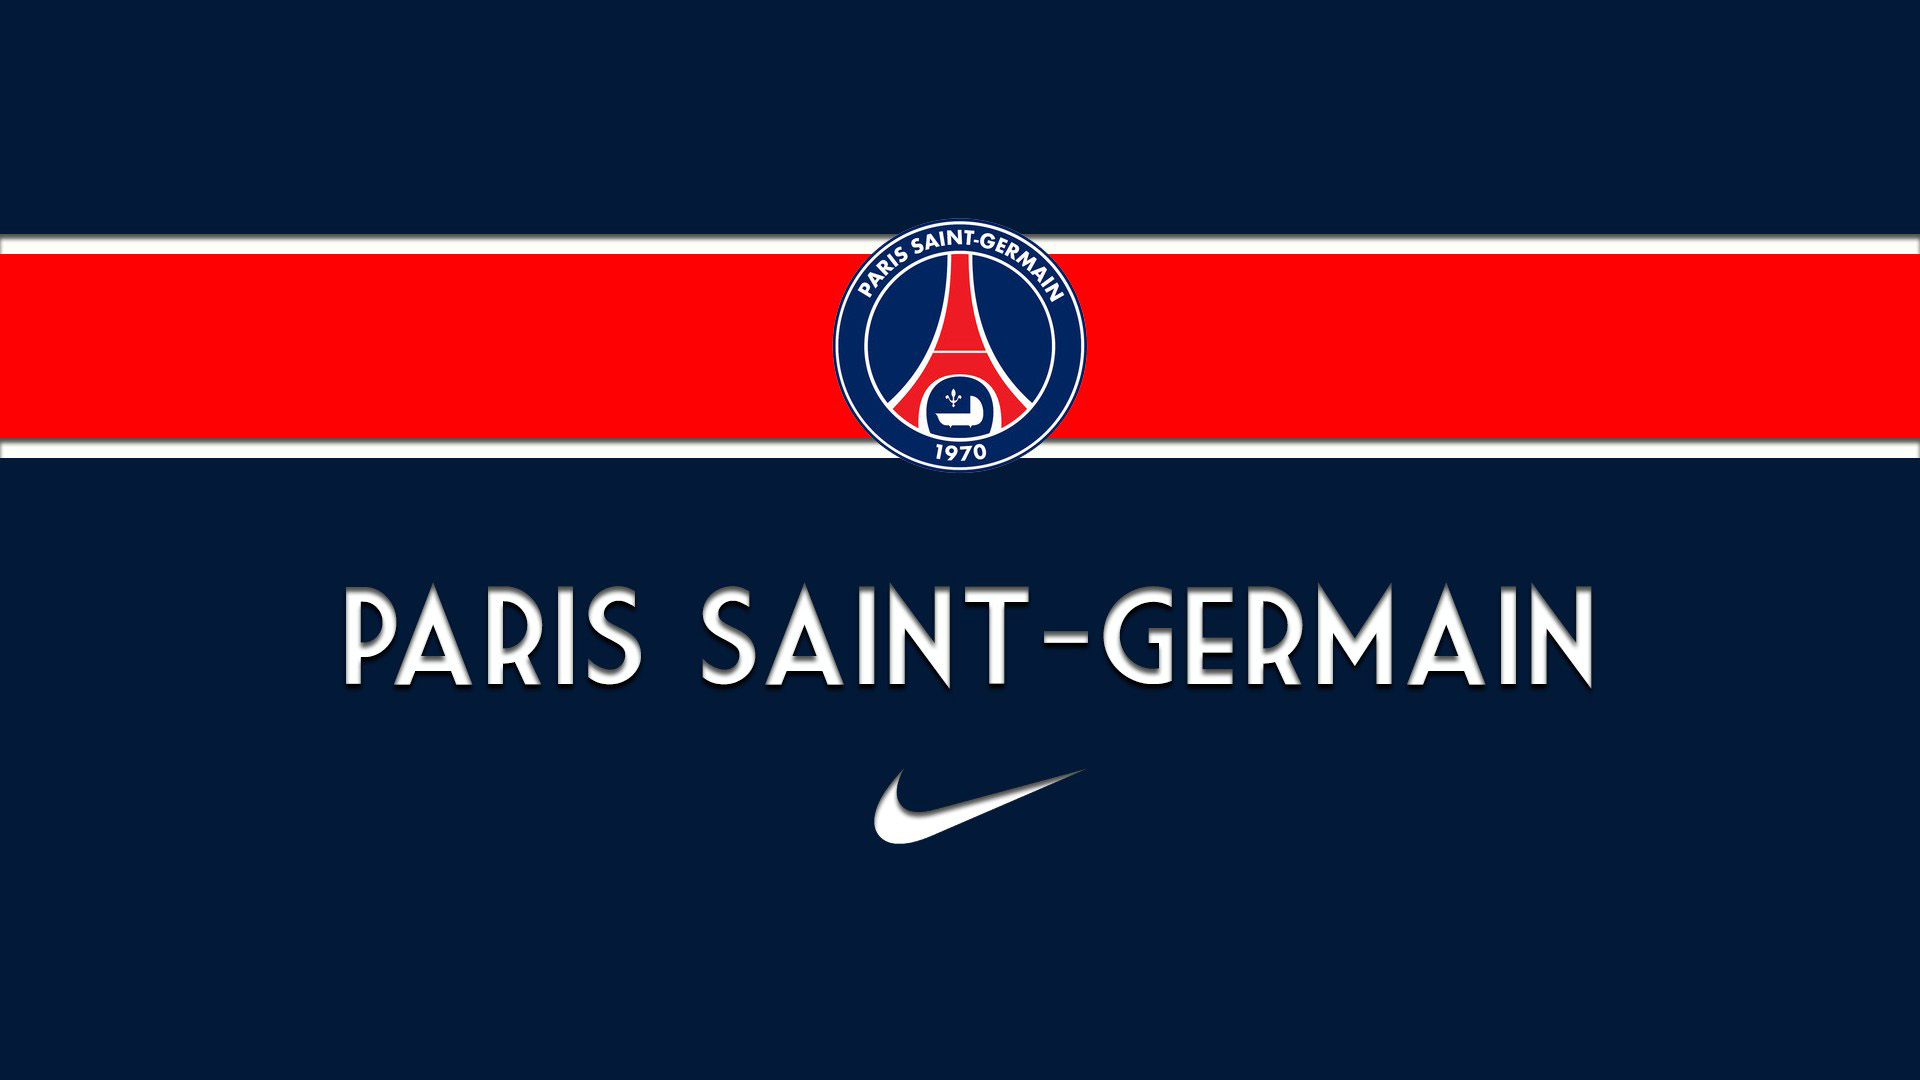 PSG Paris Saint Germain wallpaper